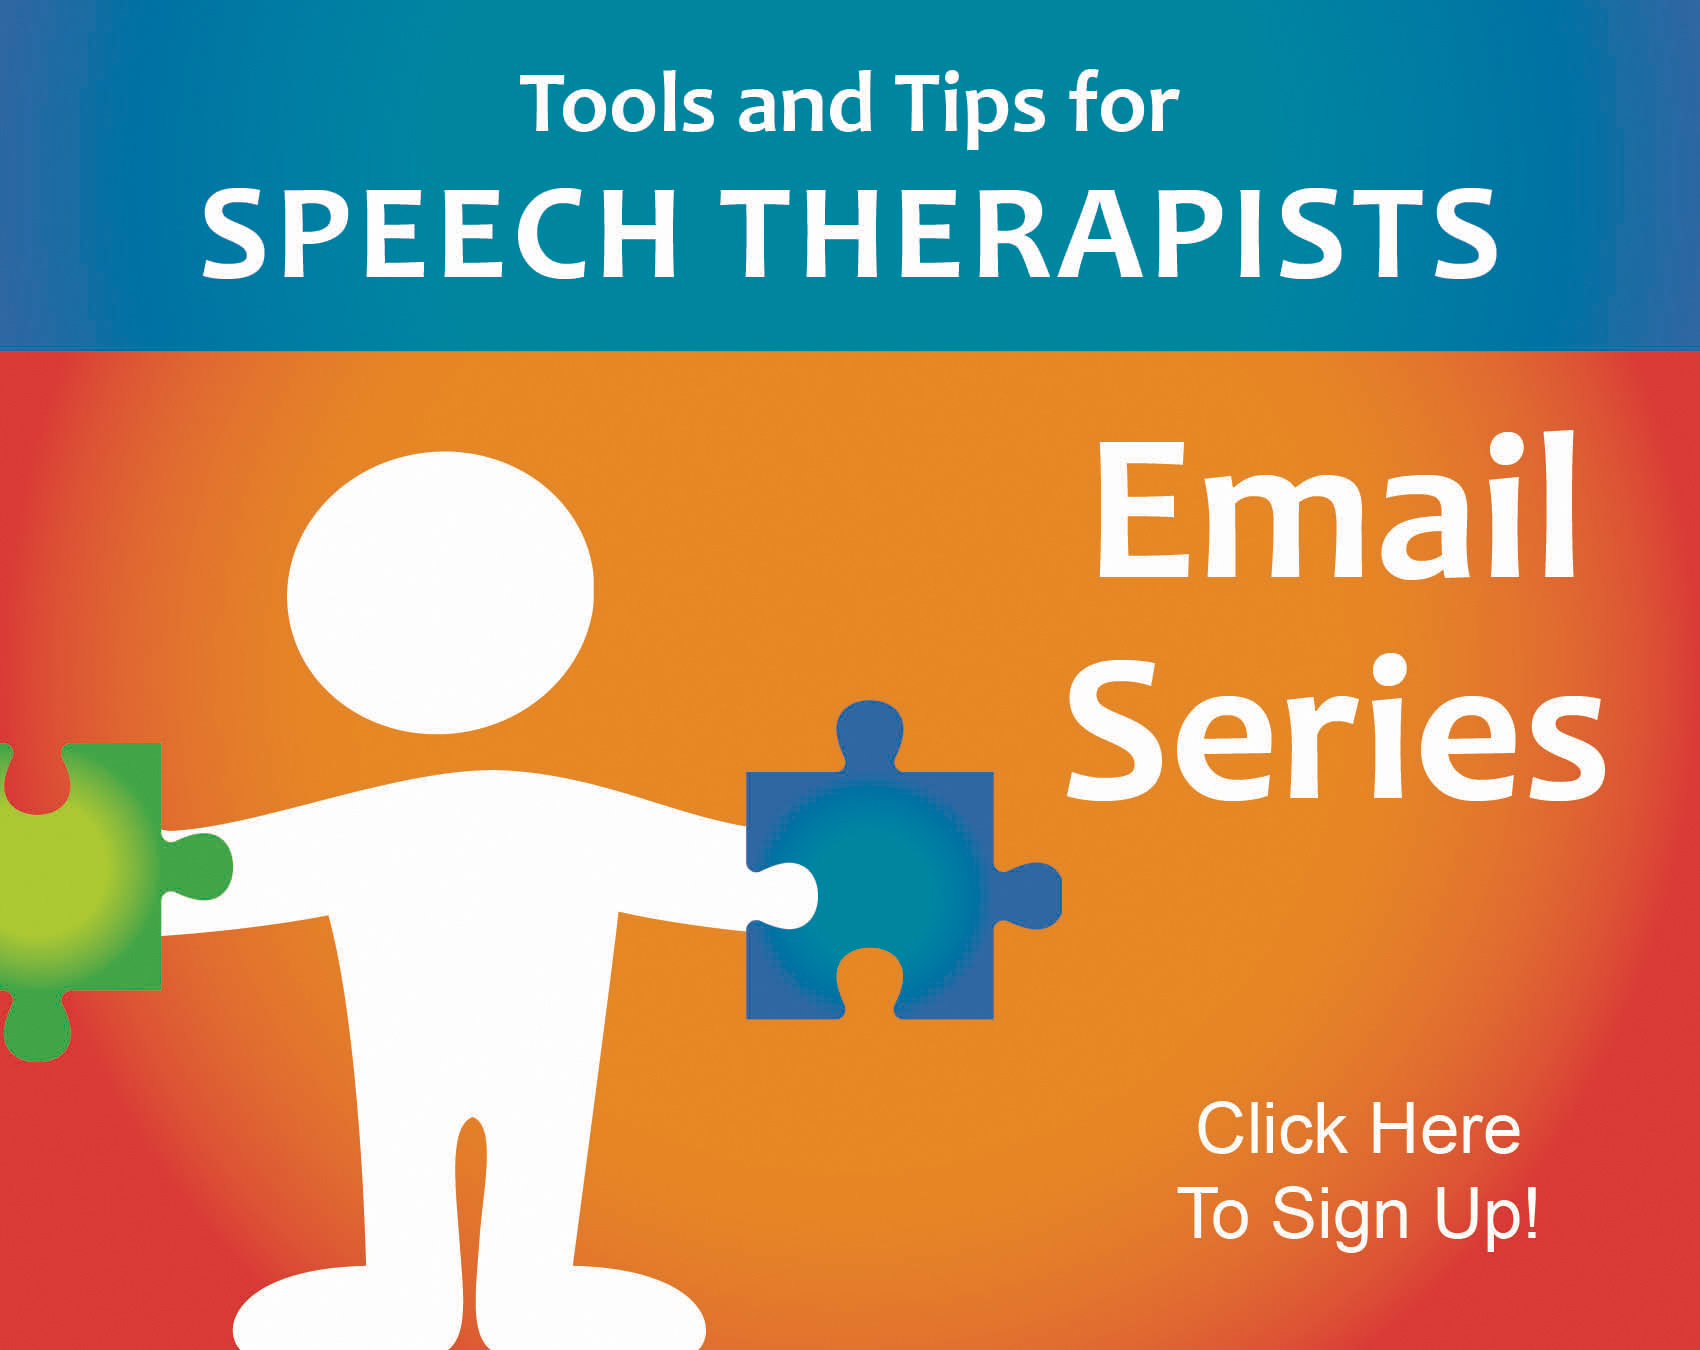 how speech and language therapists help children Going to a speech therapist is that kids who have trouble saying certain sounds or understanding others can go to a special kind of therapist for help speech therapists (also called speech-language pathologists) what do speech therapists help with.